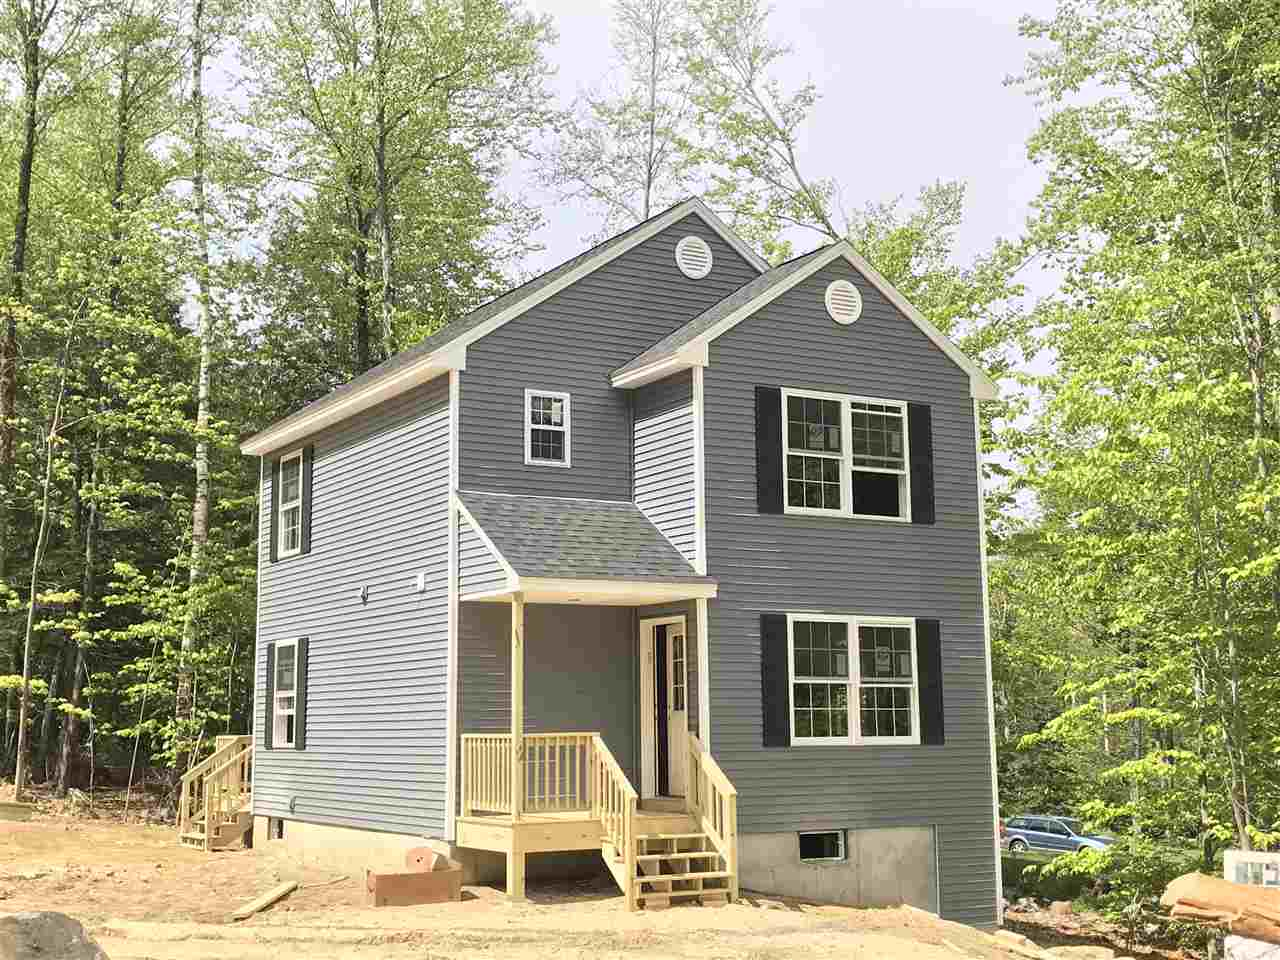 STRAFFORD NH Homes for sale